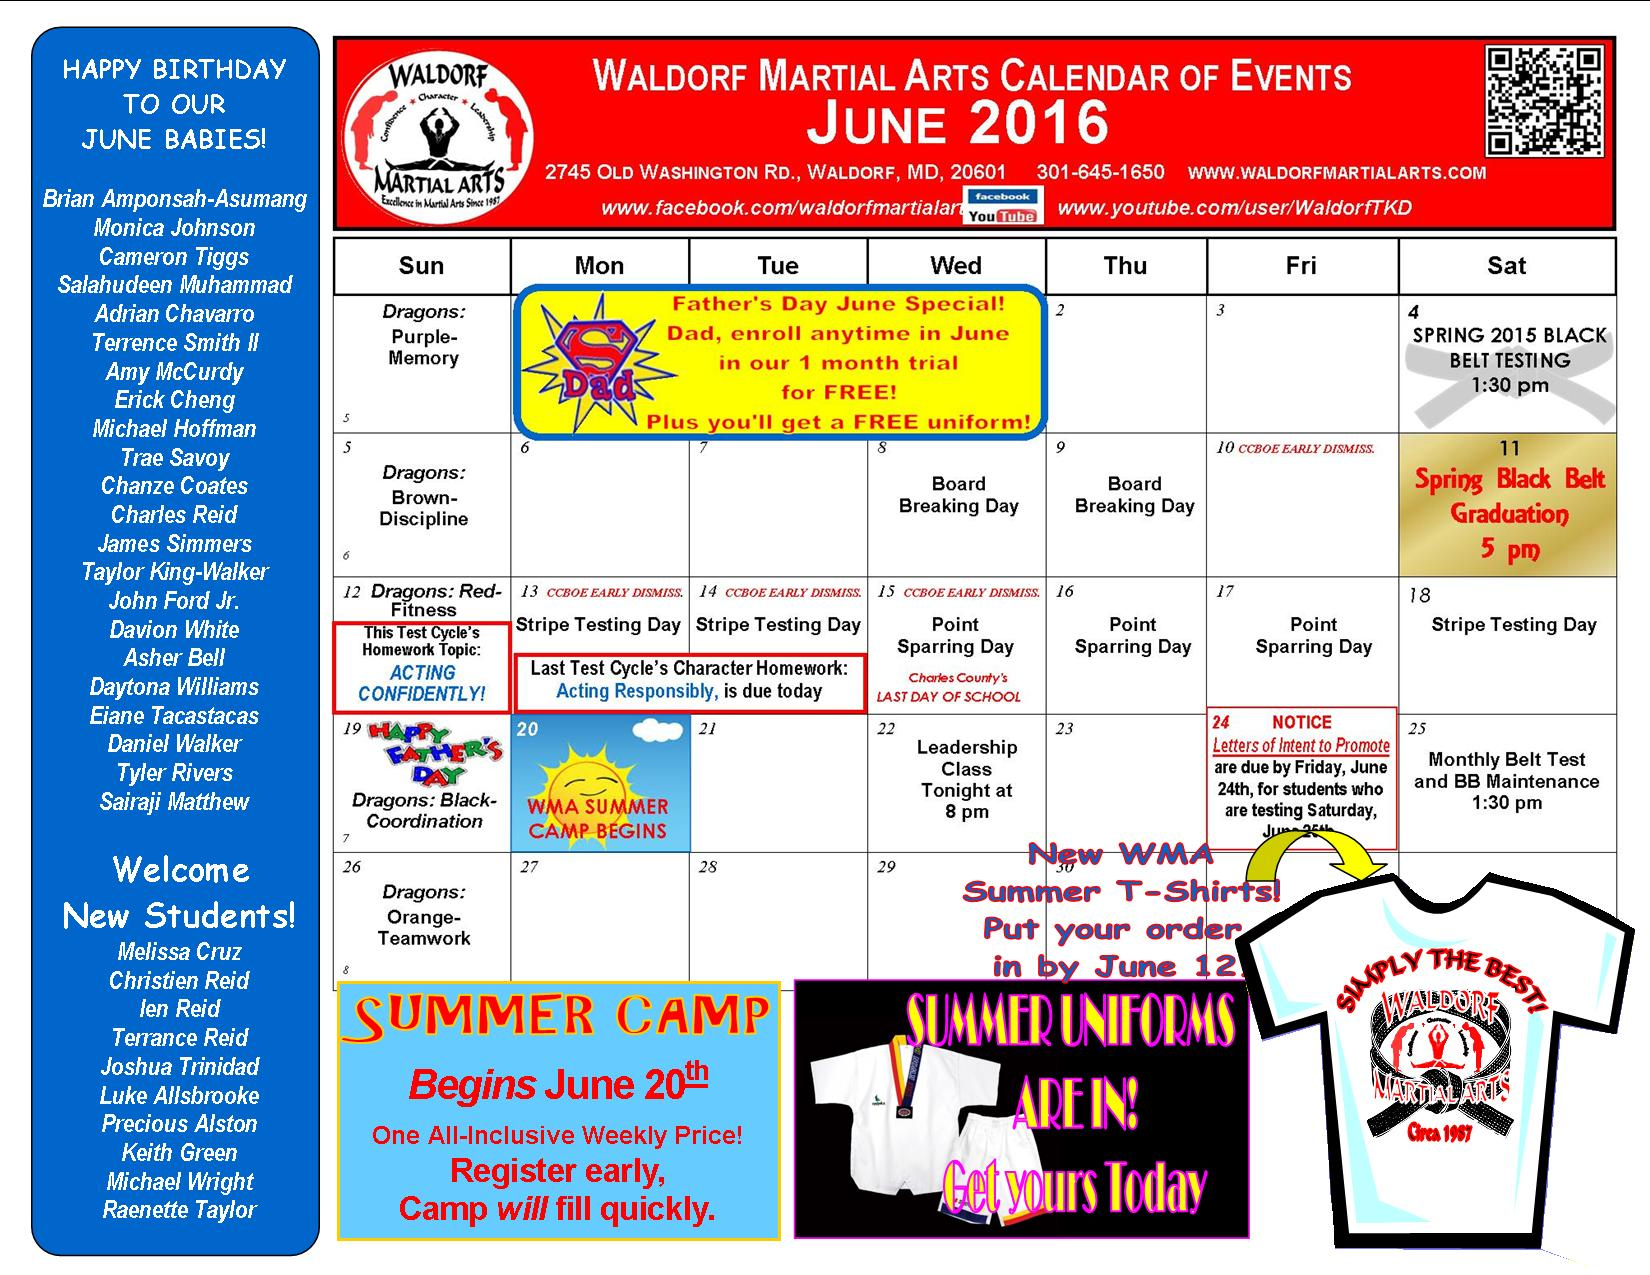 Here's your June 2016 Waldorf Martial Arts Calendar of Events